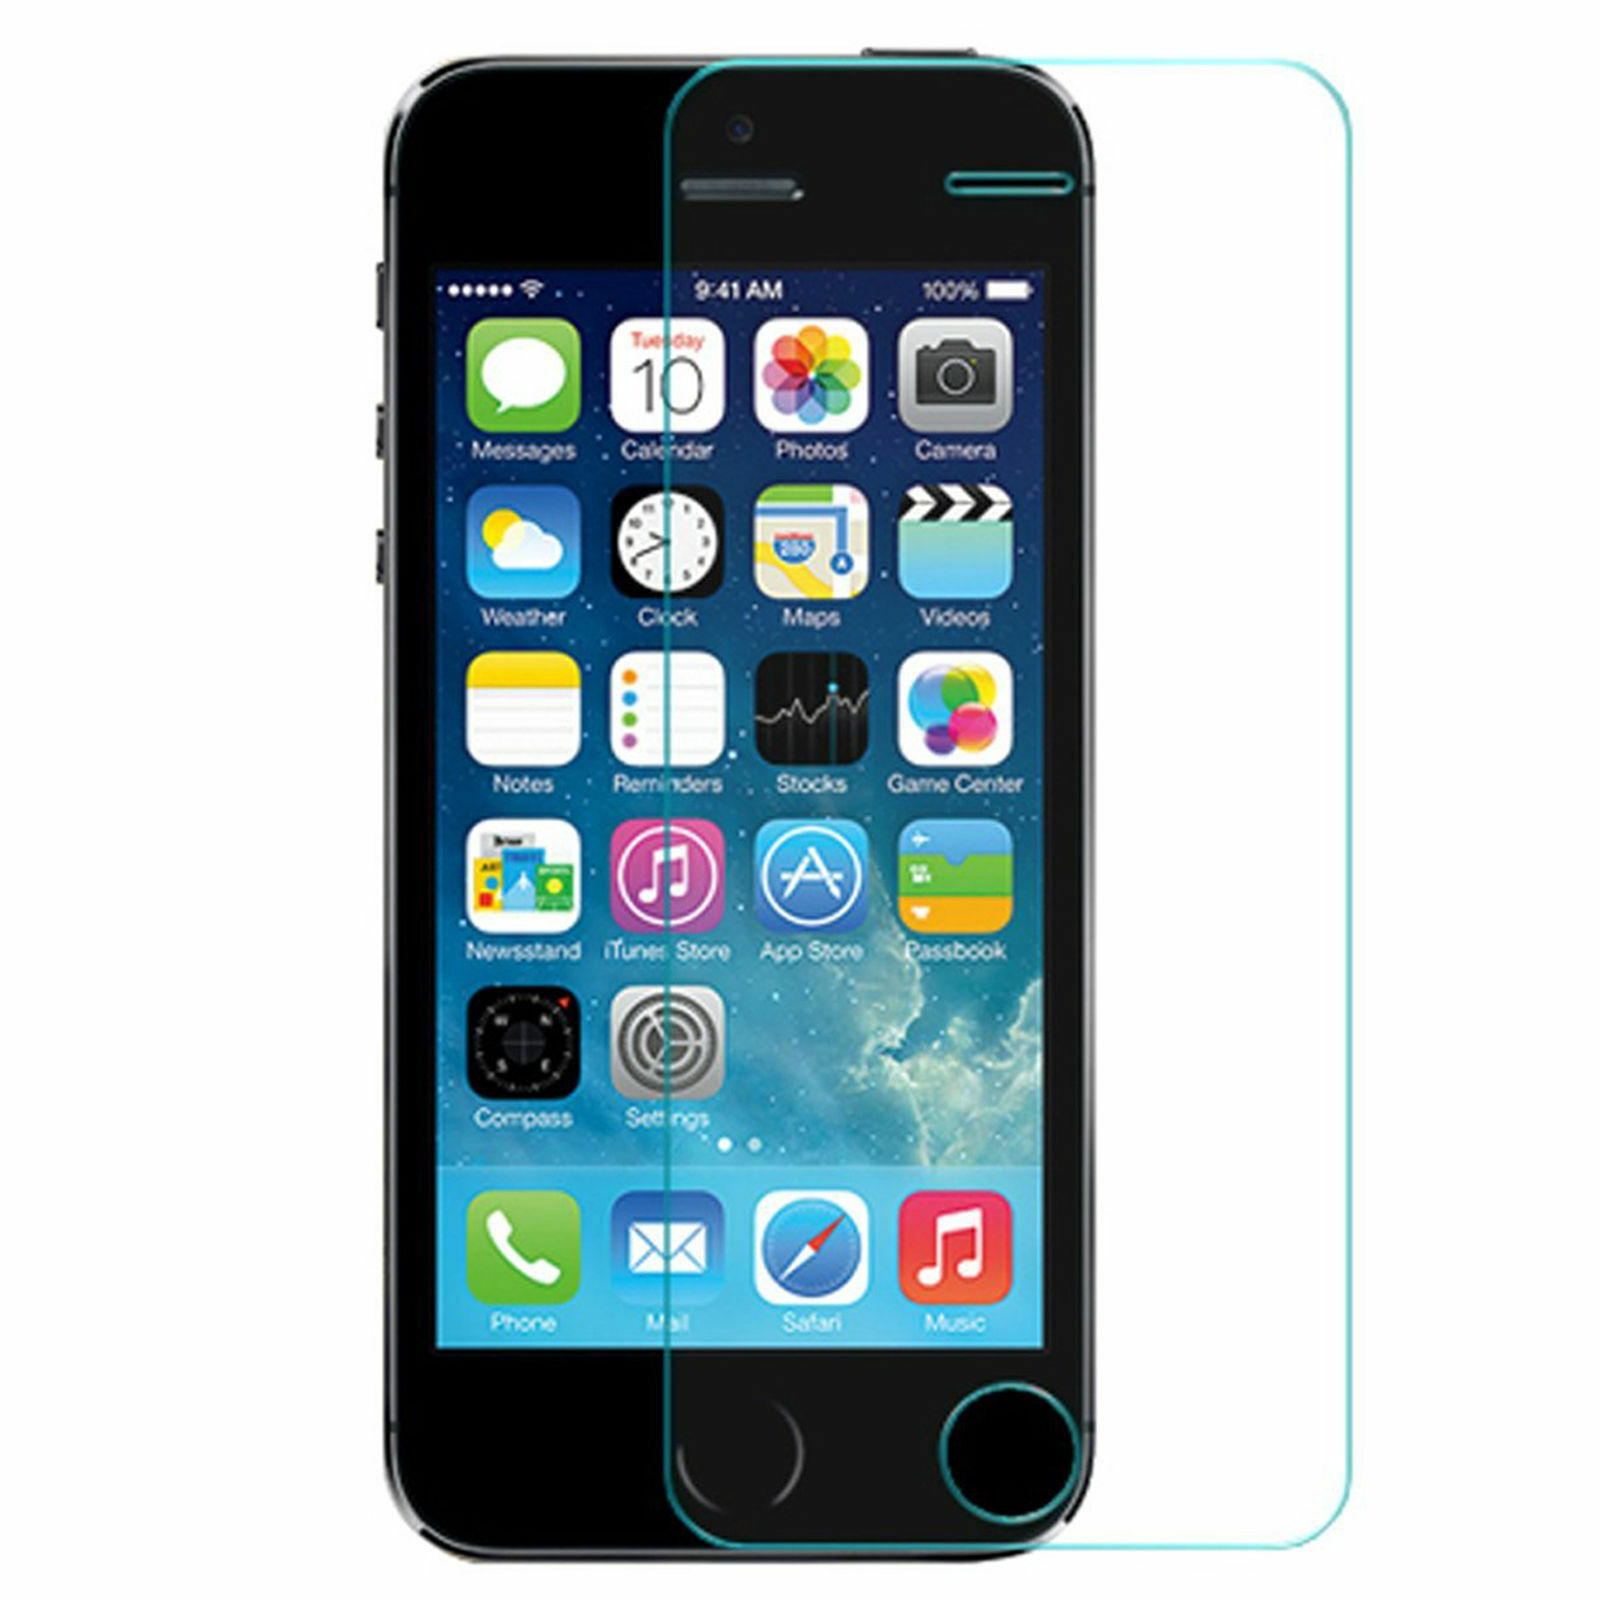 Premium Real Tempered Glass Screen Protector Film For iPhone 6/6s & X 7/8 8 Plus